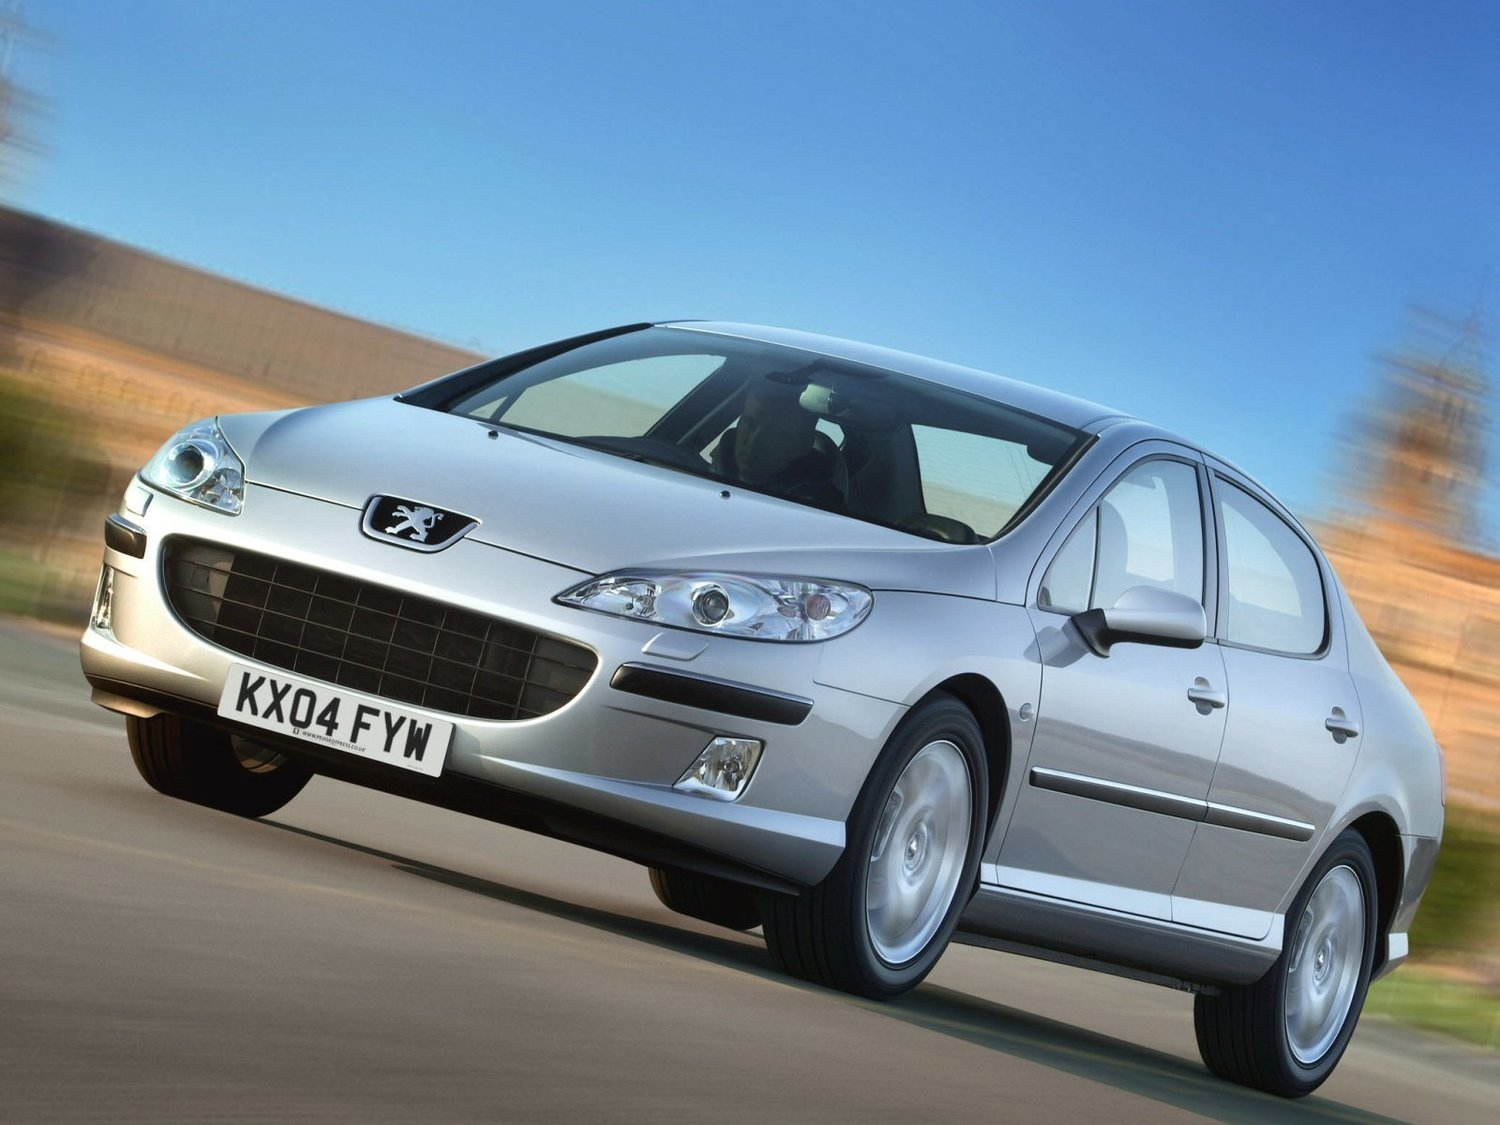 Peugeot 407 2.0i MM6LP 9657362180 S86B6YC1